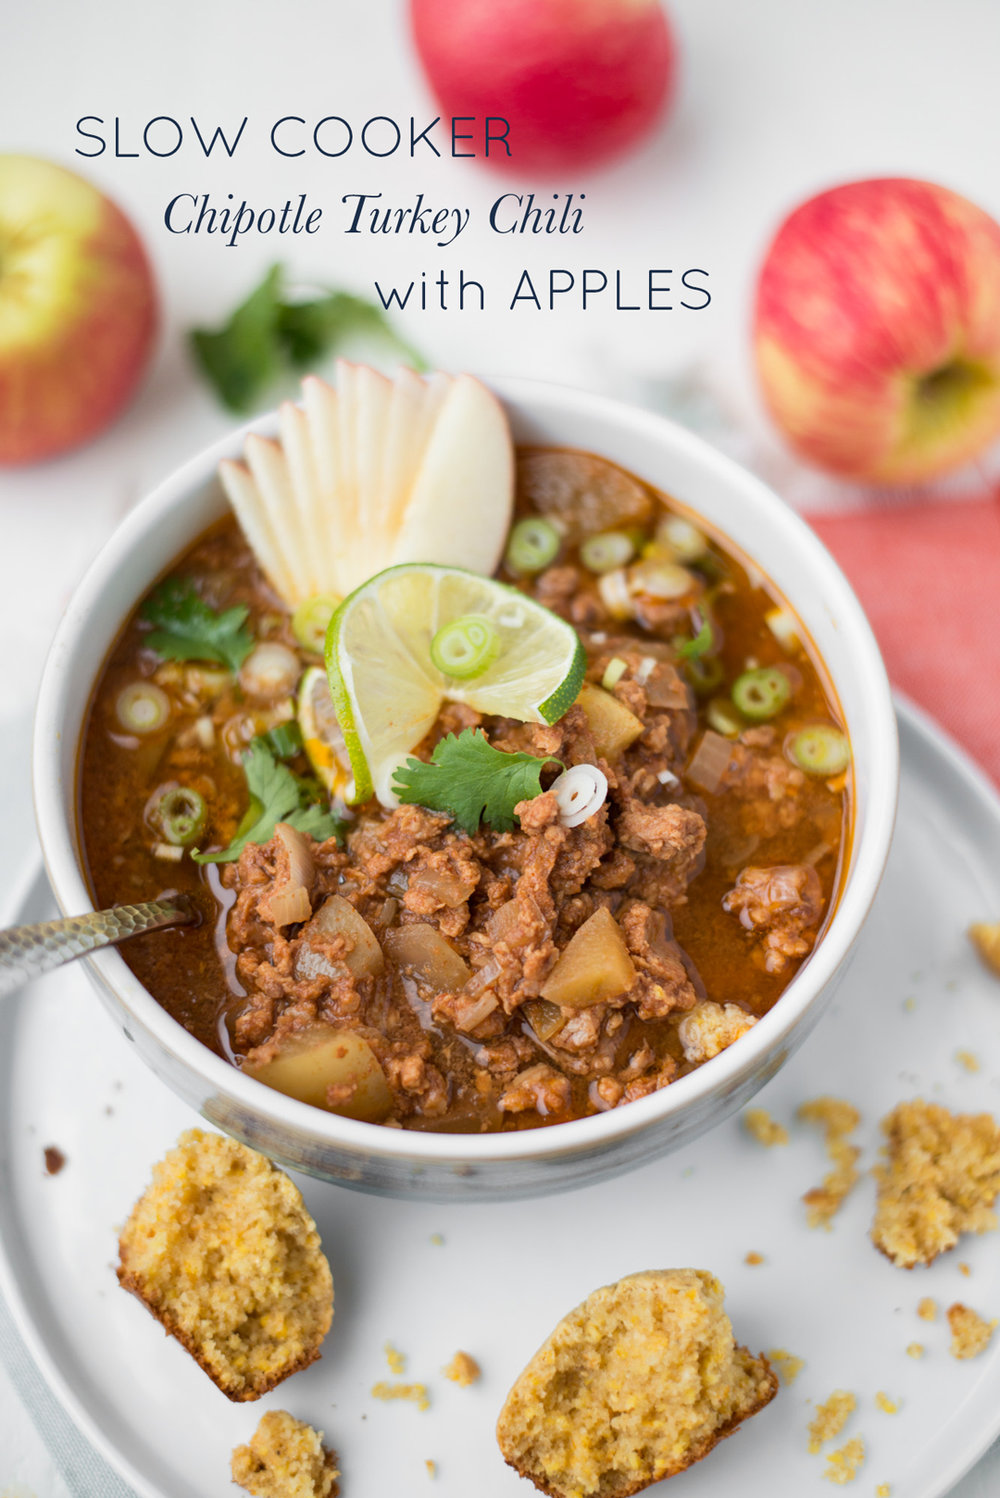 Warm, hearty and super flavorful, Slow Cooker Chipotle Turkey Chili with Apples is simple to make and full of all the good stuff!